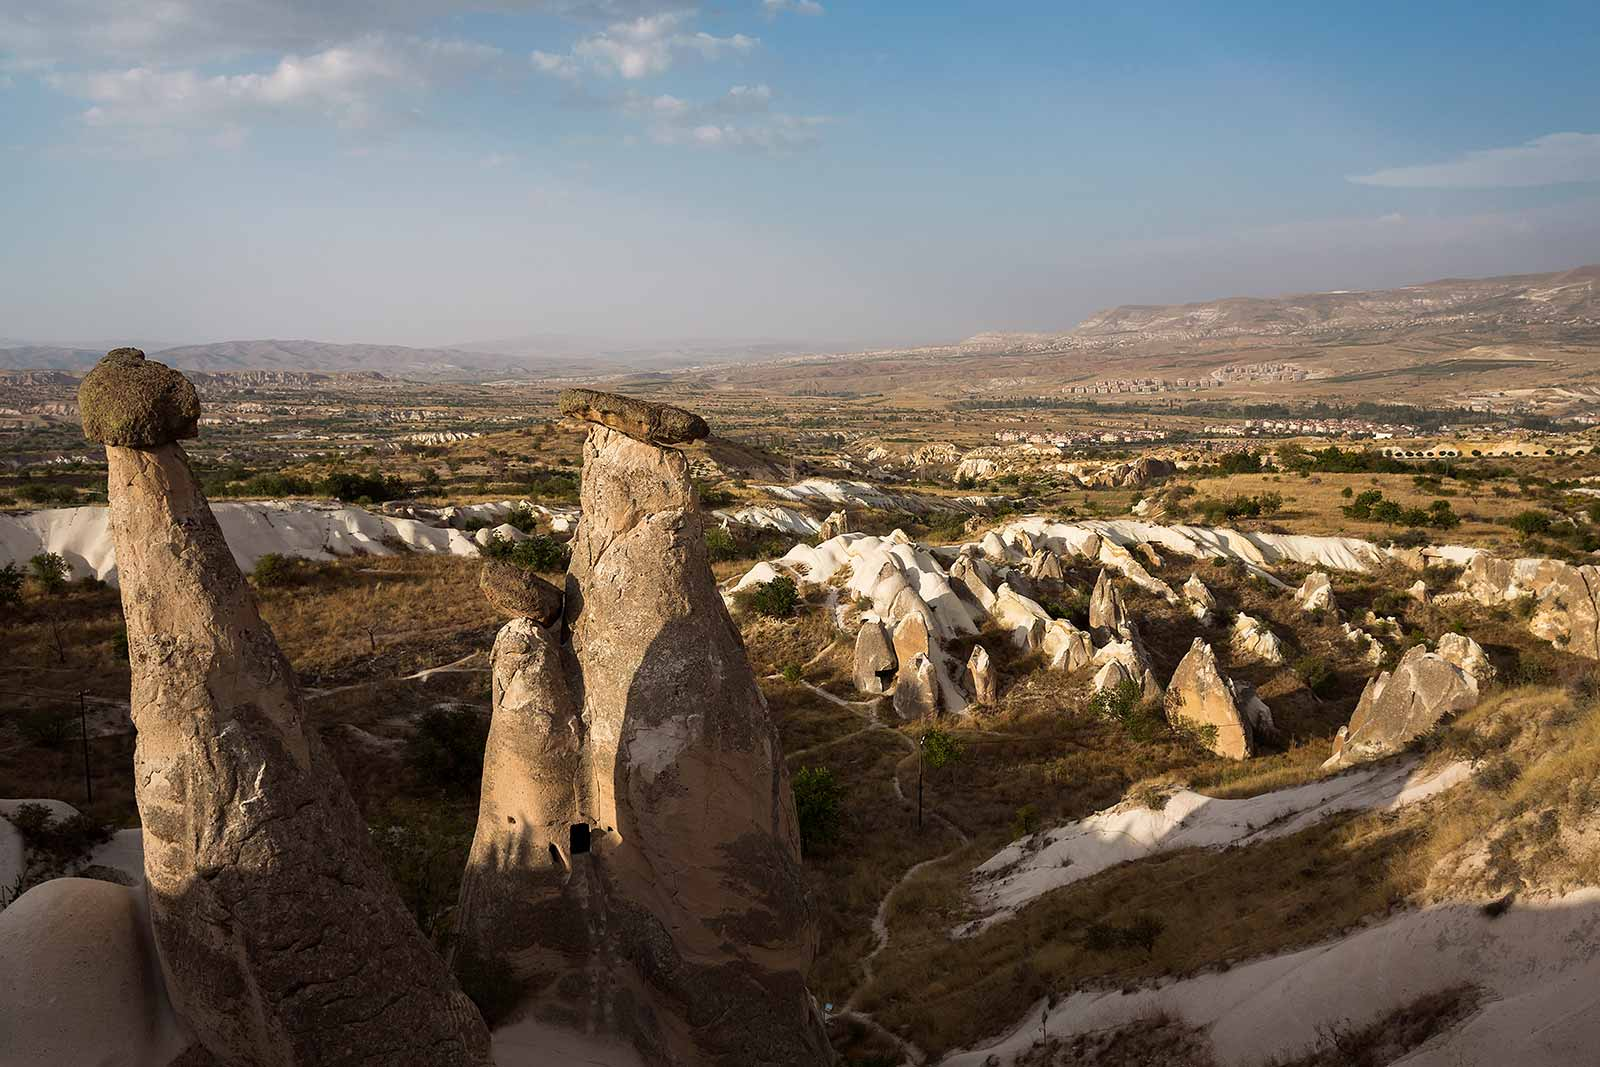 Volcanic eruptions created this surreal landscape of Cappadocia. The lava flows formed tuff rock, which wind and rain sculpted into sinuous valleys with curvy cliff faces and pointy fairy chimneys.